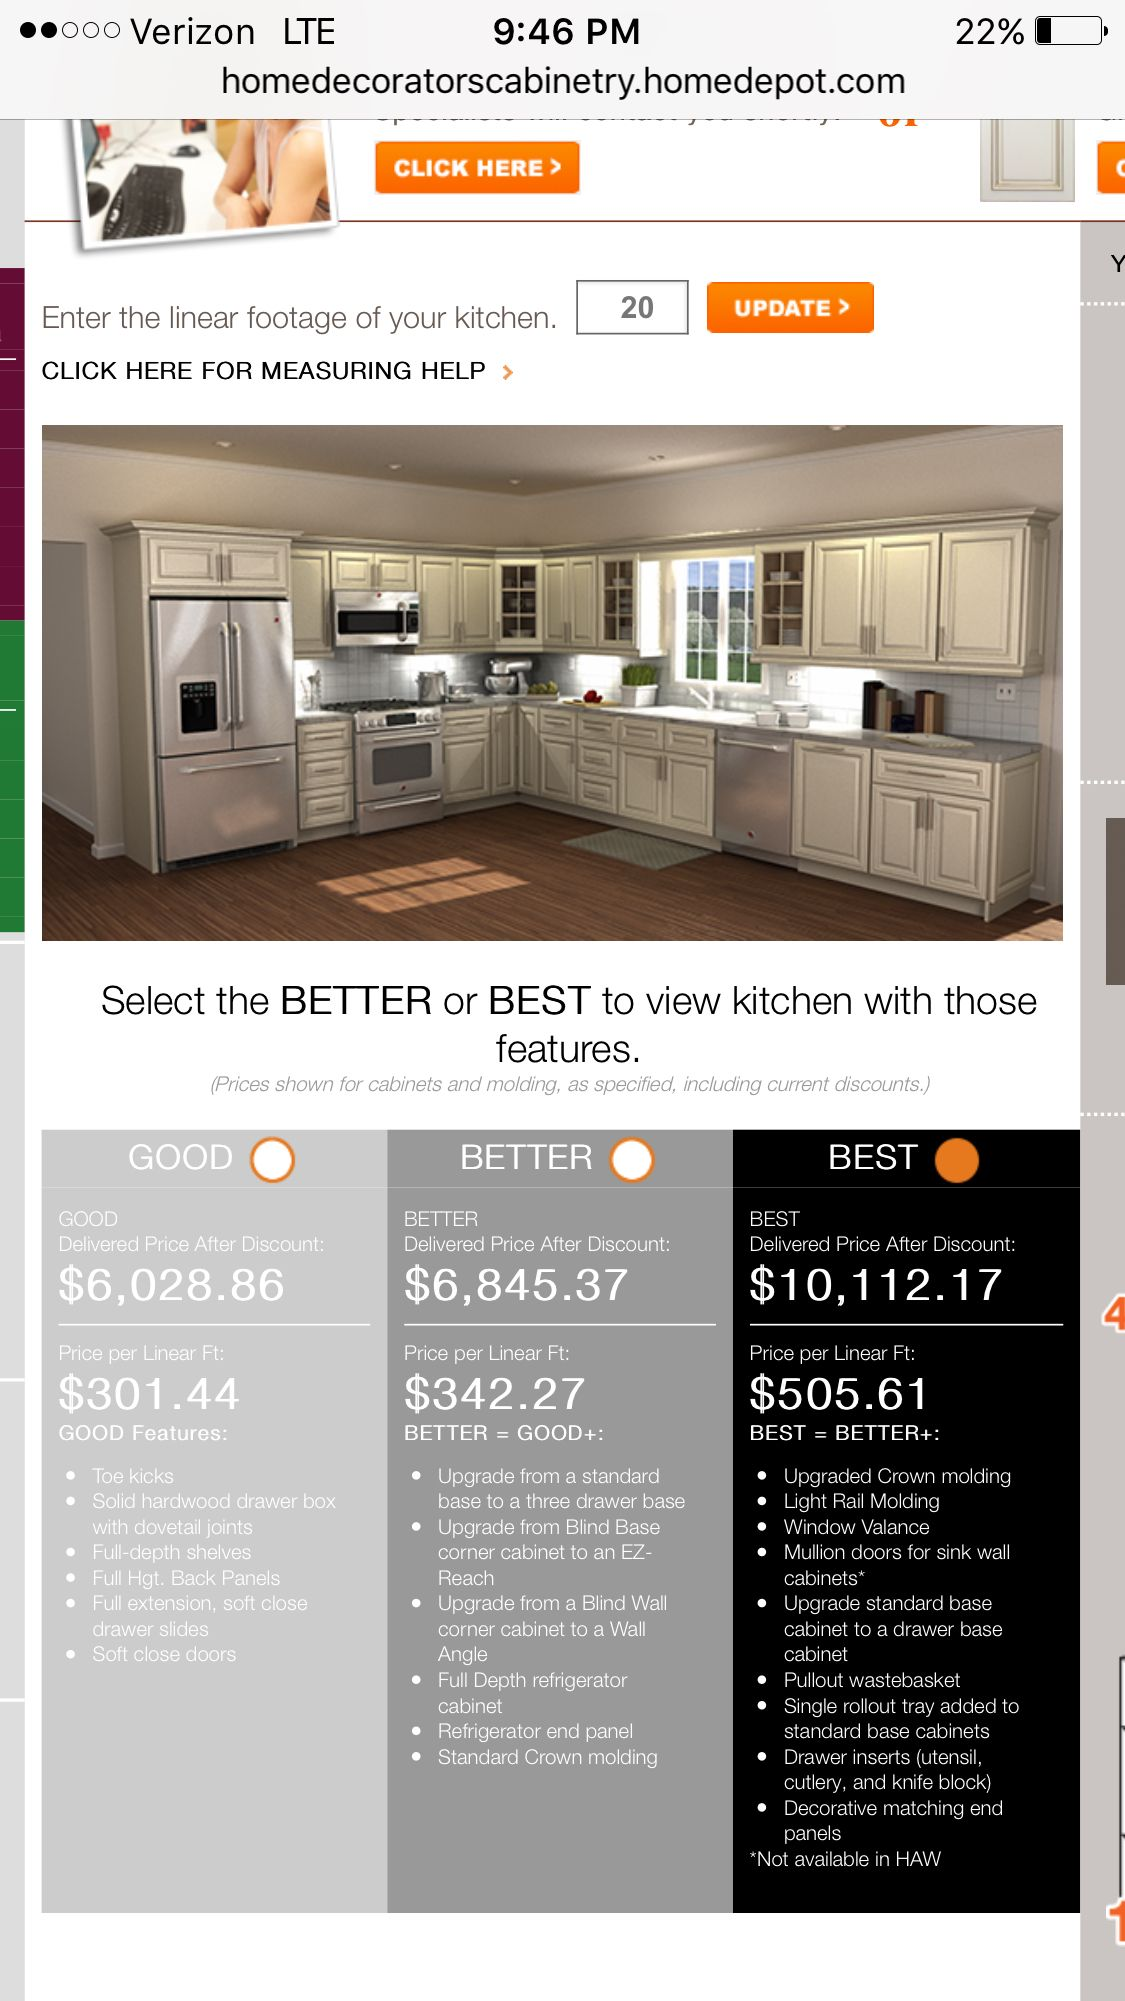 Home Depot Cabinets 9x11 Kitchen Layout Home Depot Kitchen Kitchen Design Home Depot Cabinets